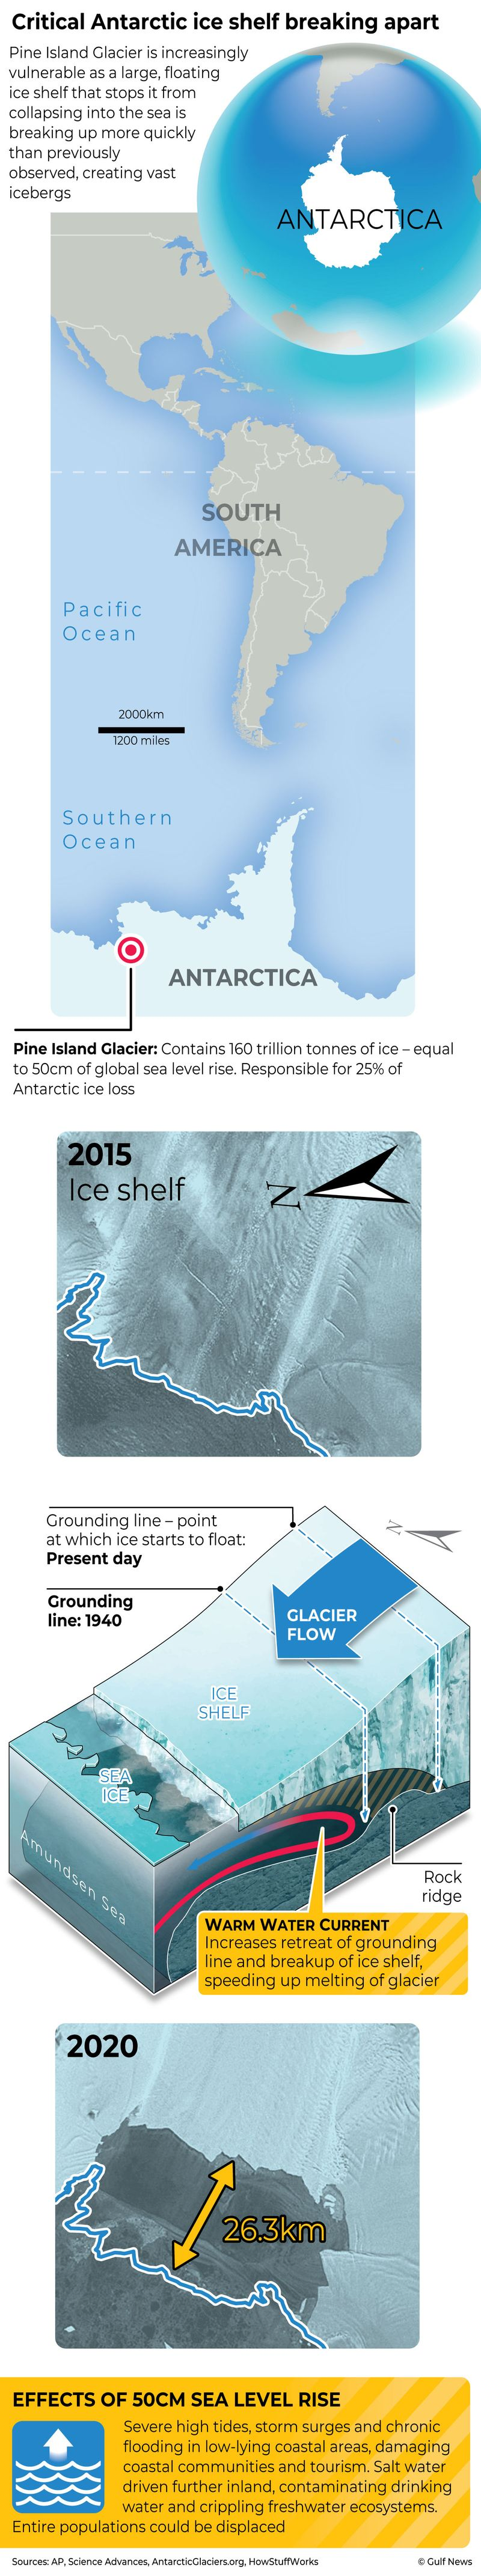 Infographic: Pine Island Glacier under increasing threat of collapse